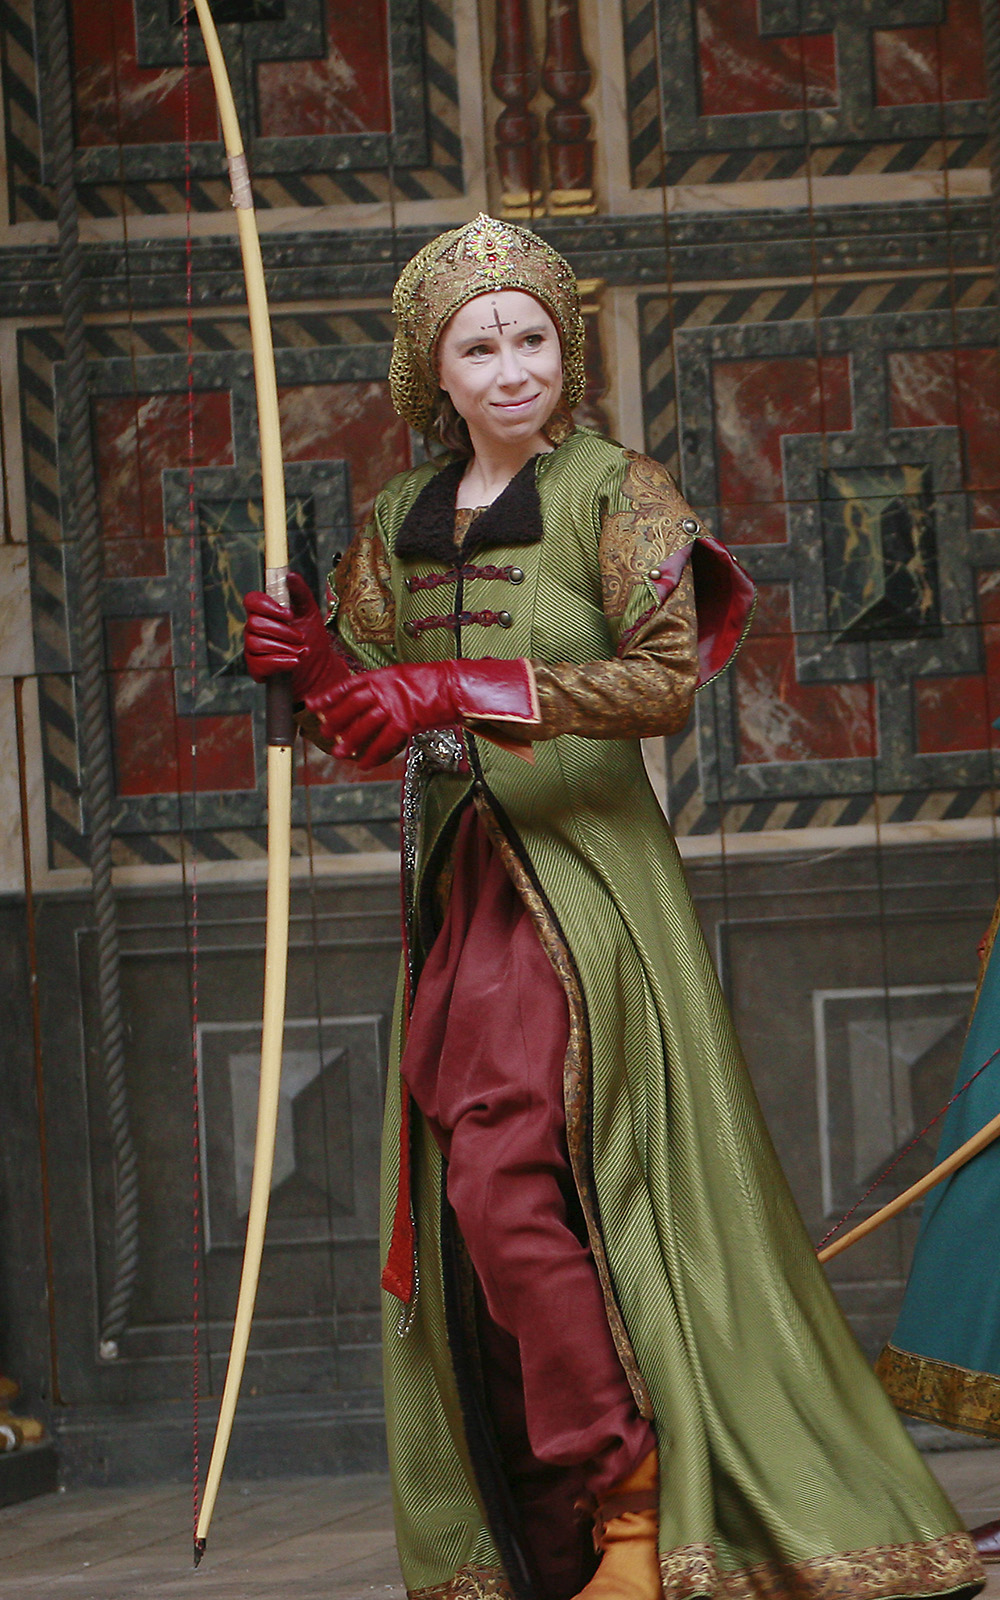 An actor wearing a green hunting coat holds a long bow.